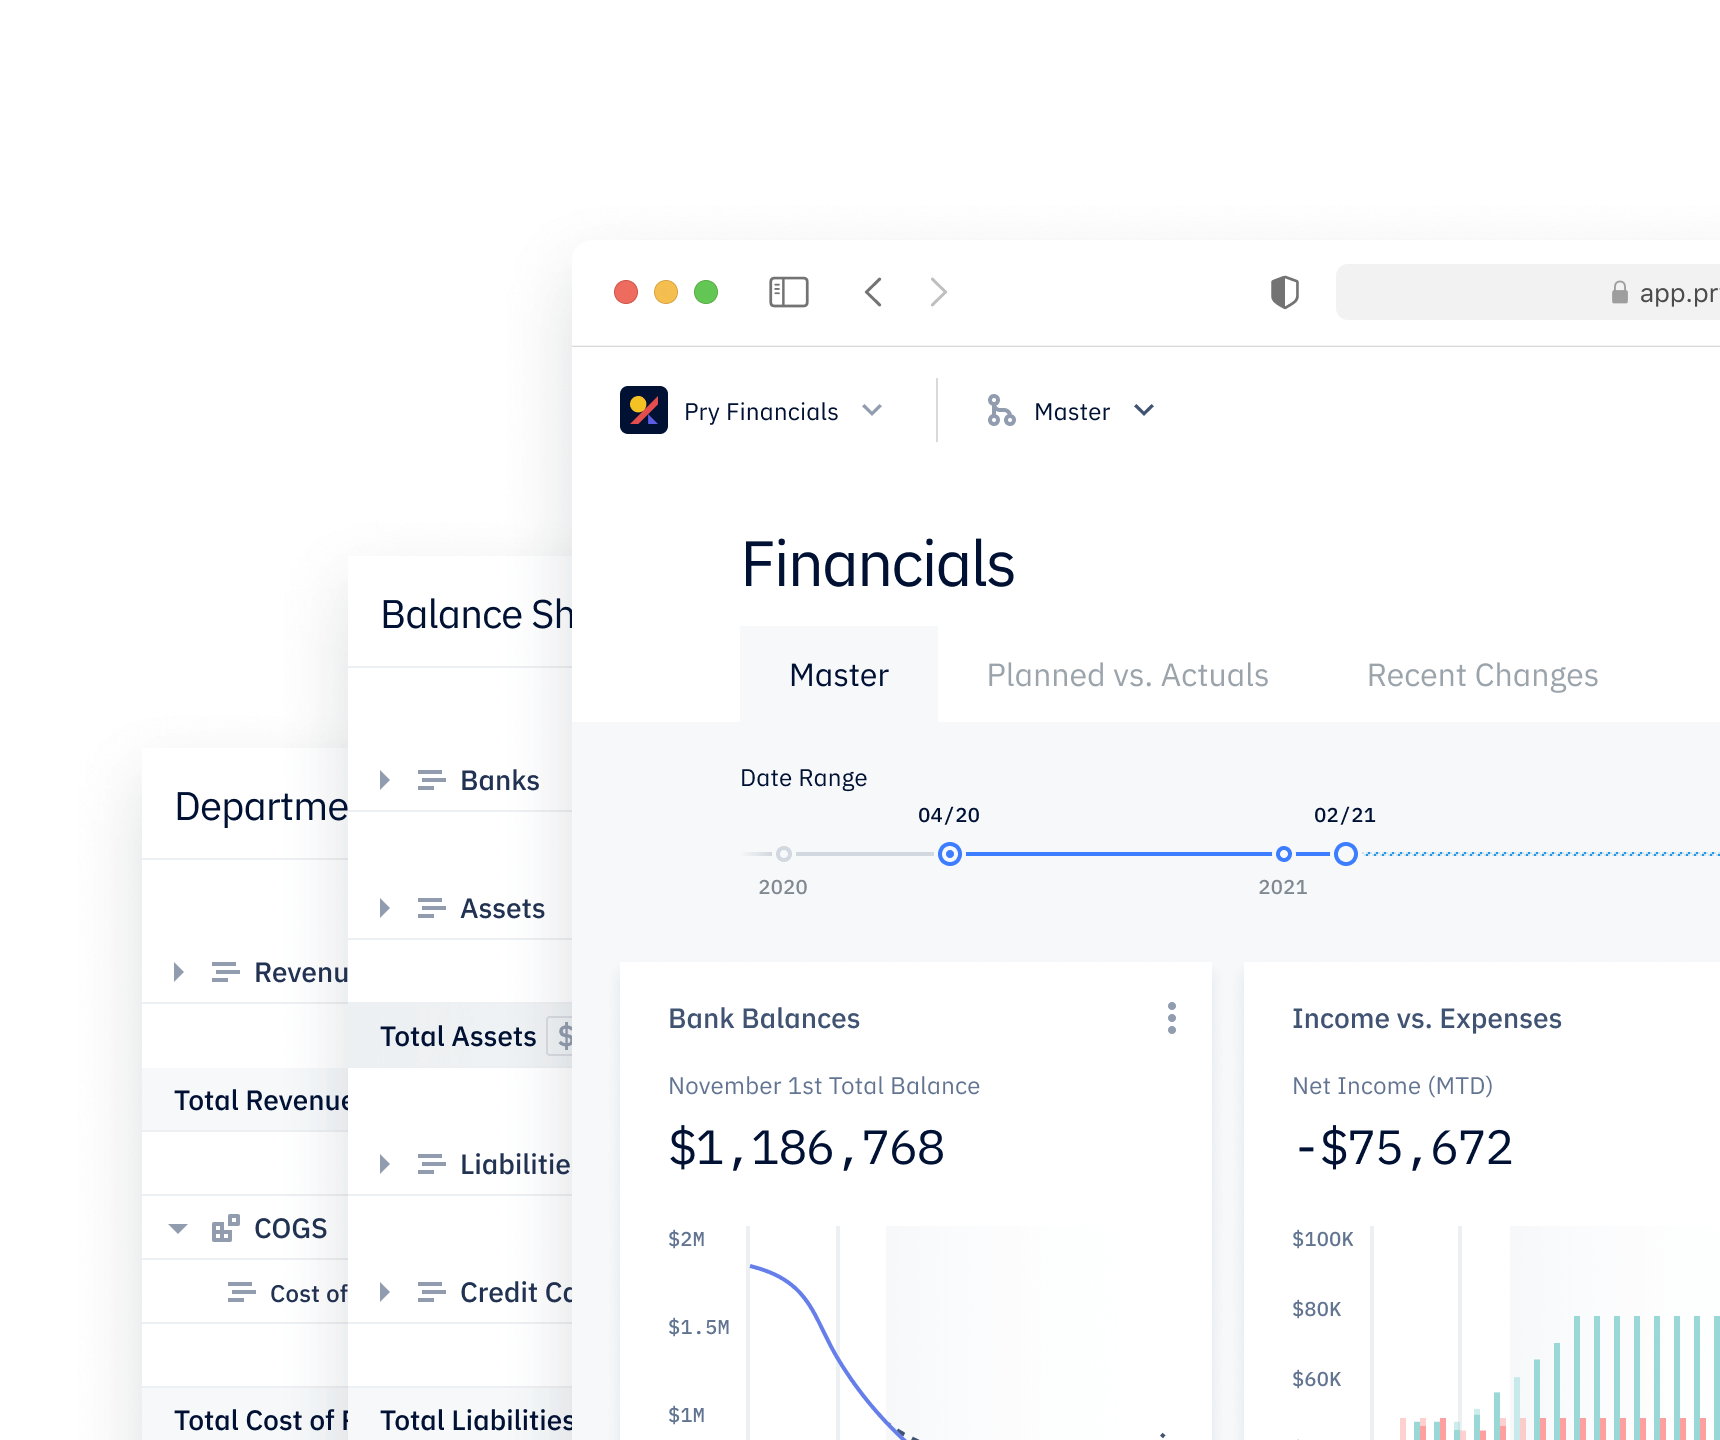 A financial forecasting app with 3 way financial statements and cash flow analysis